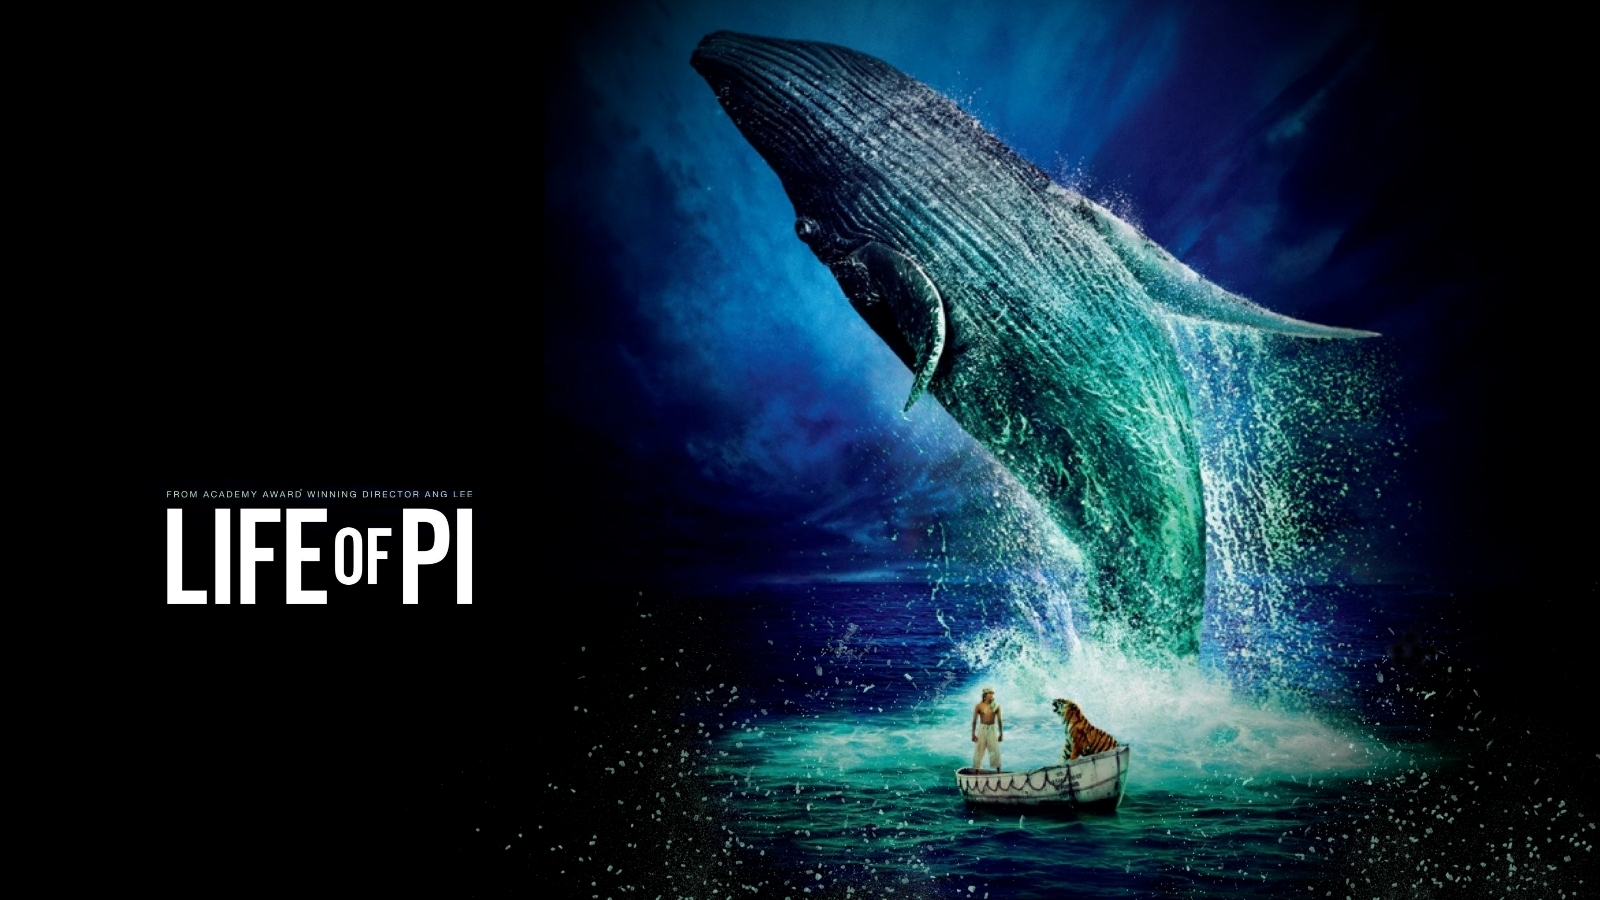 http://1.bp.blogspot.com/-LGGuJU1NFcQ/UMKsnk0FirI/AAAAAAAAAF0/0P5xebZXQ64/s1600/Life_Of_Pi_Movie_Wallpaper_1600x900.jpg